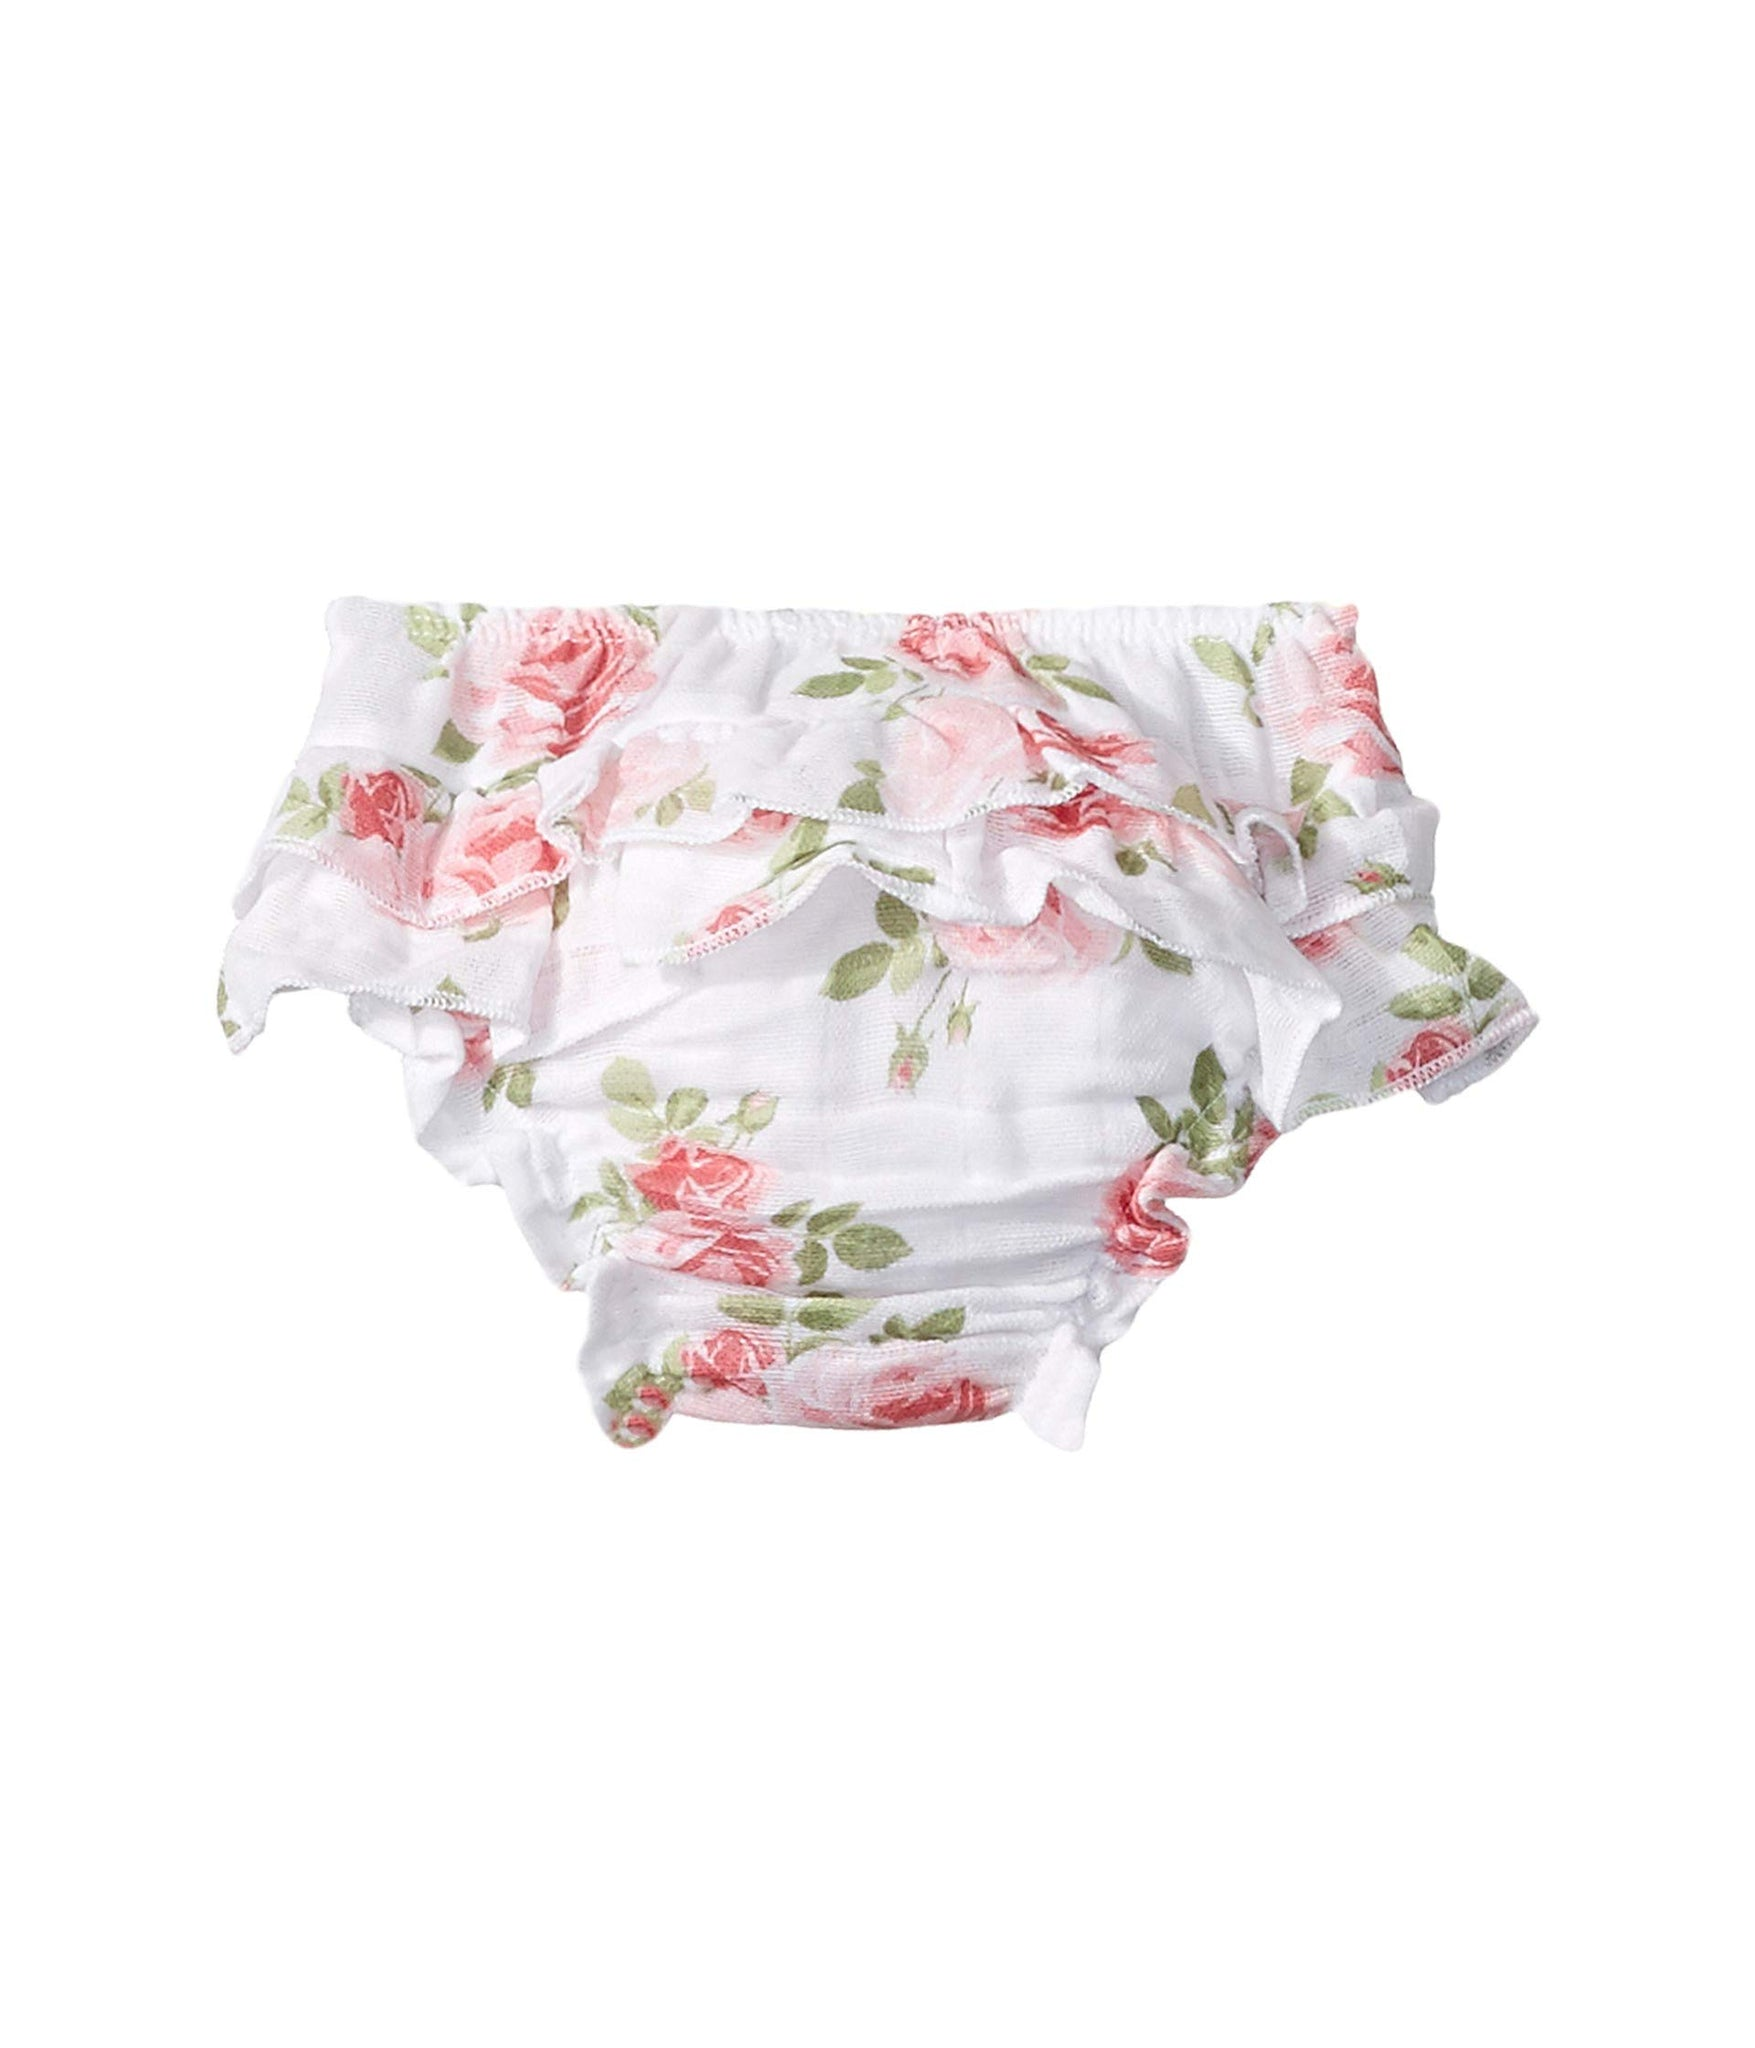 Mud Pie Baby Girl's Rose Headband Bloomer Set (Infant) White 6-12 Months